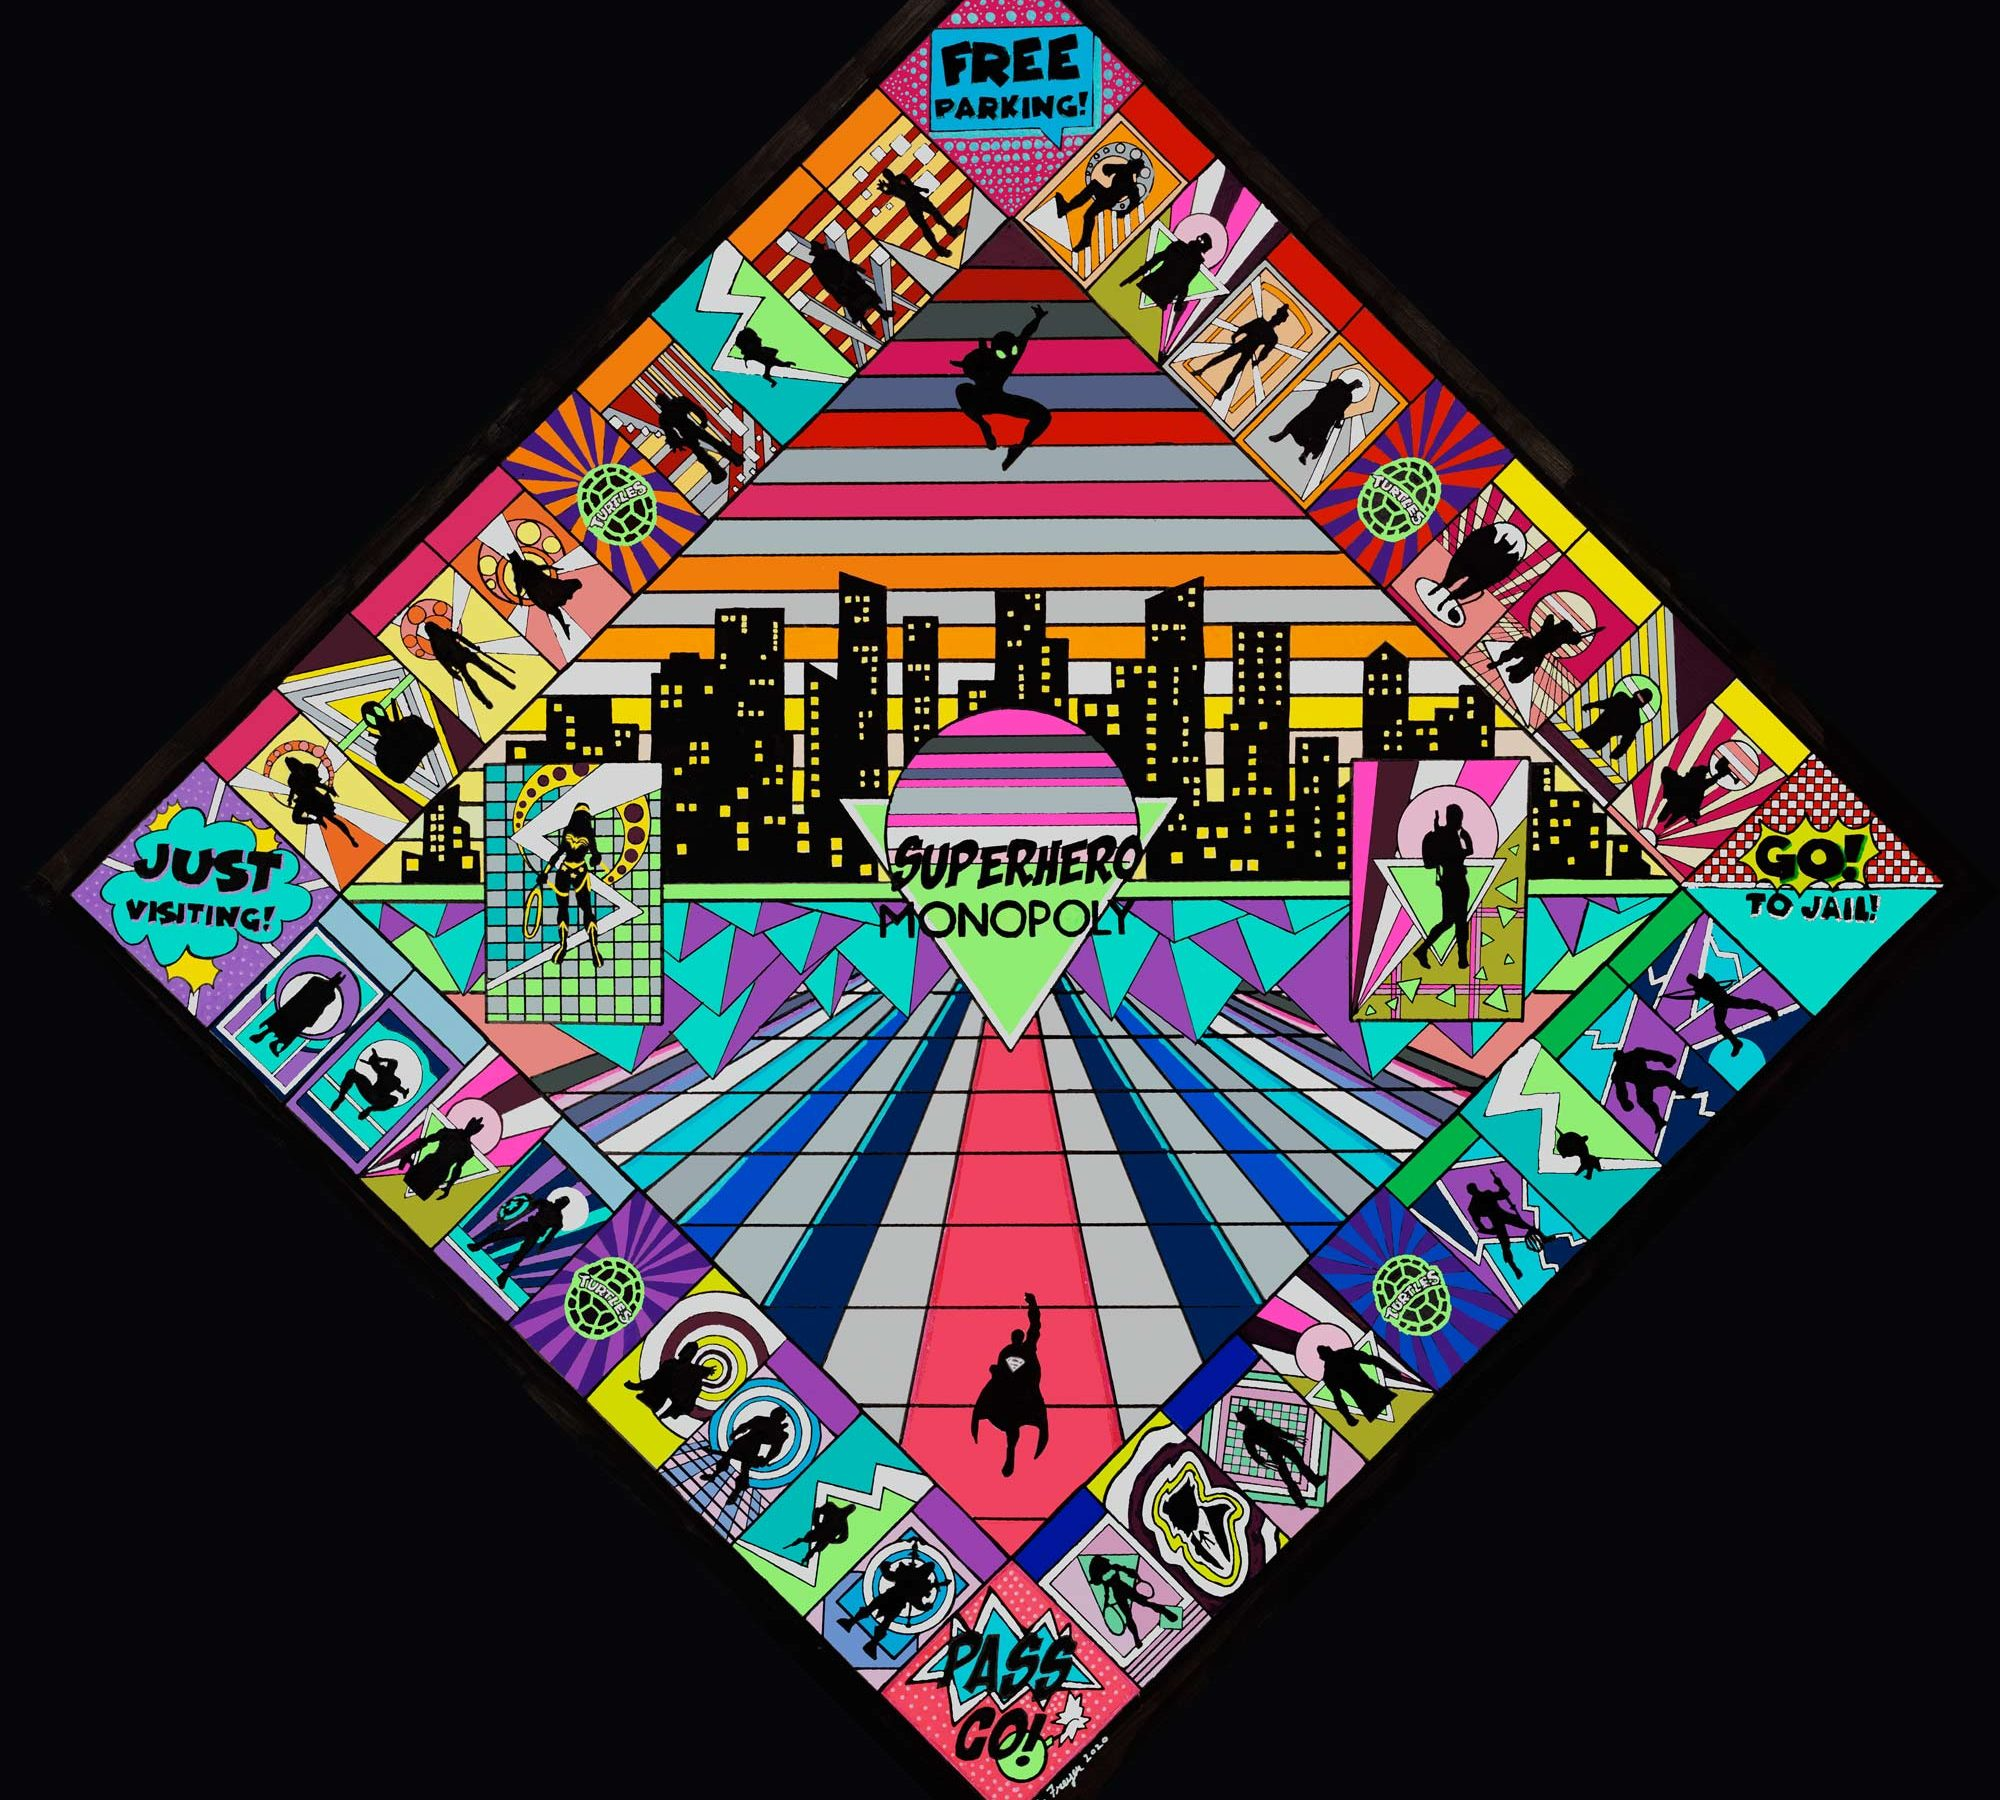 Superhero Monopoly art piece produced by Chris Freyer in 2020